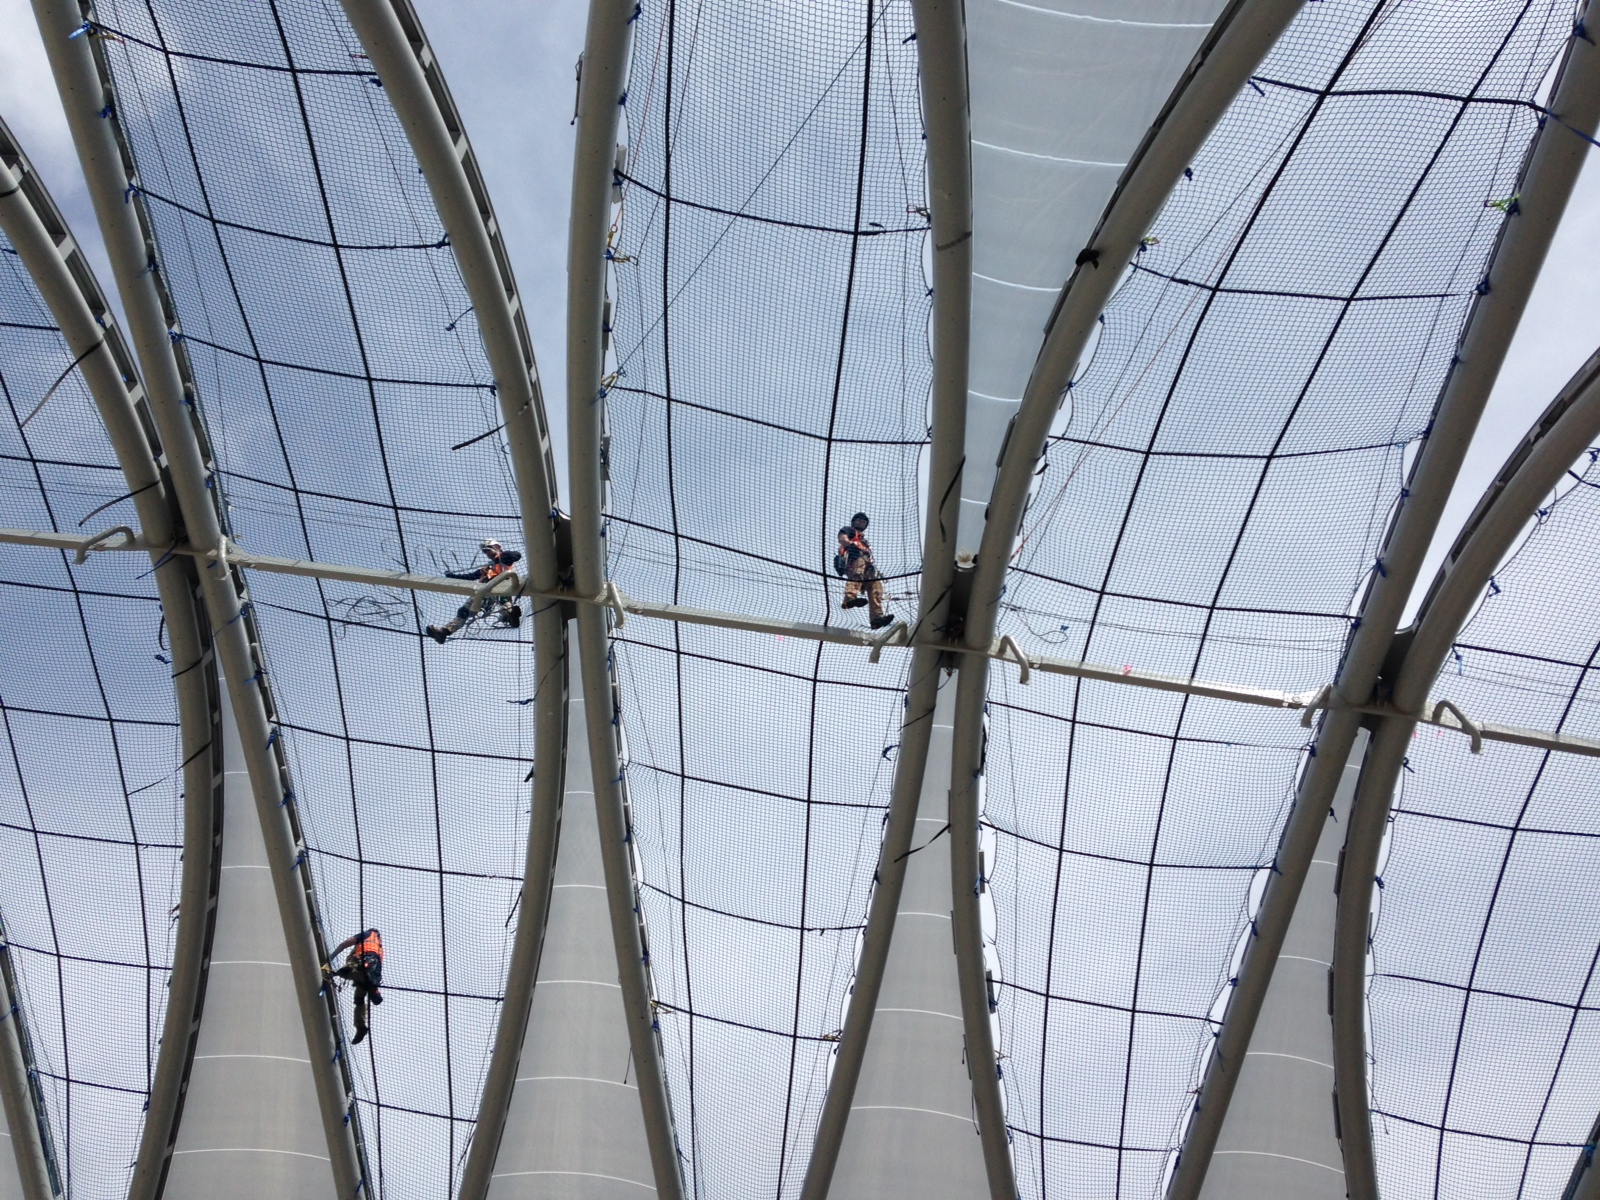 SATS' SPRAT technicians collaborating to install Texion® ETFE pneumatic cushions on the A.R.T.I.C project.